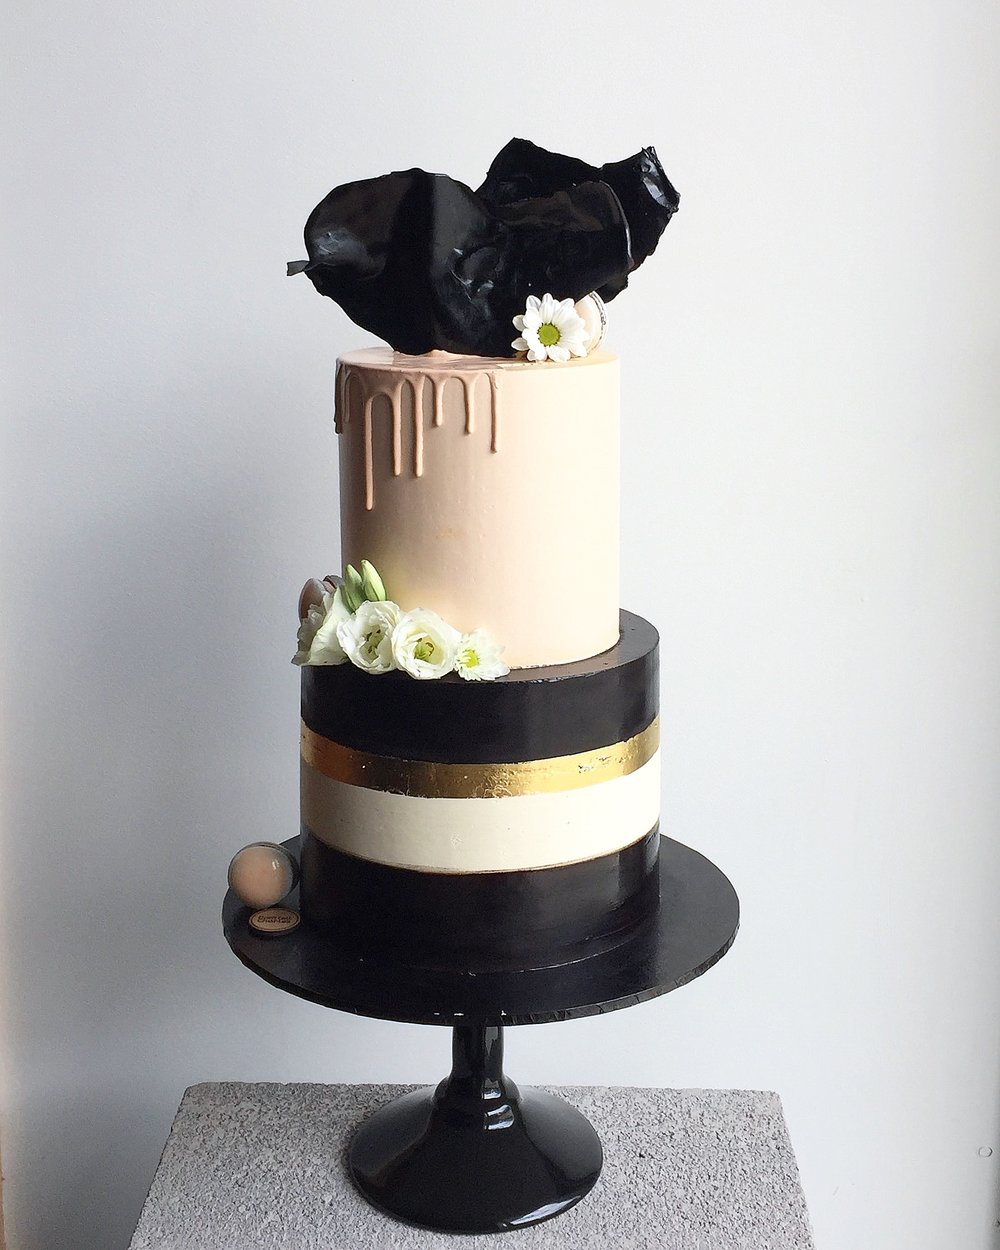 Modern and Elegant Celebration Cake